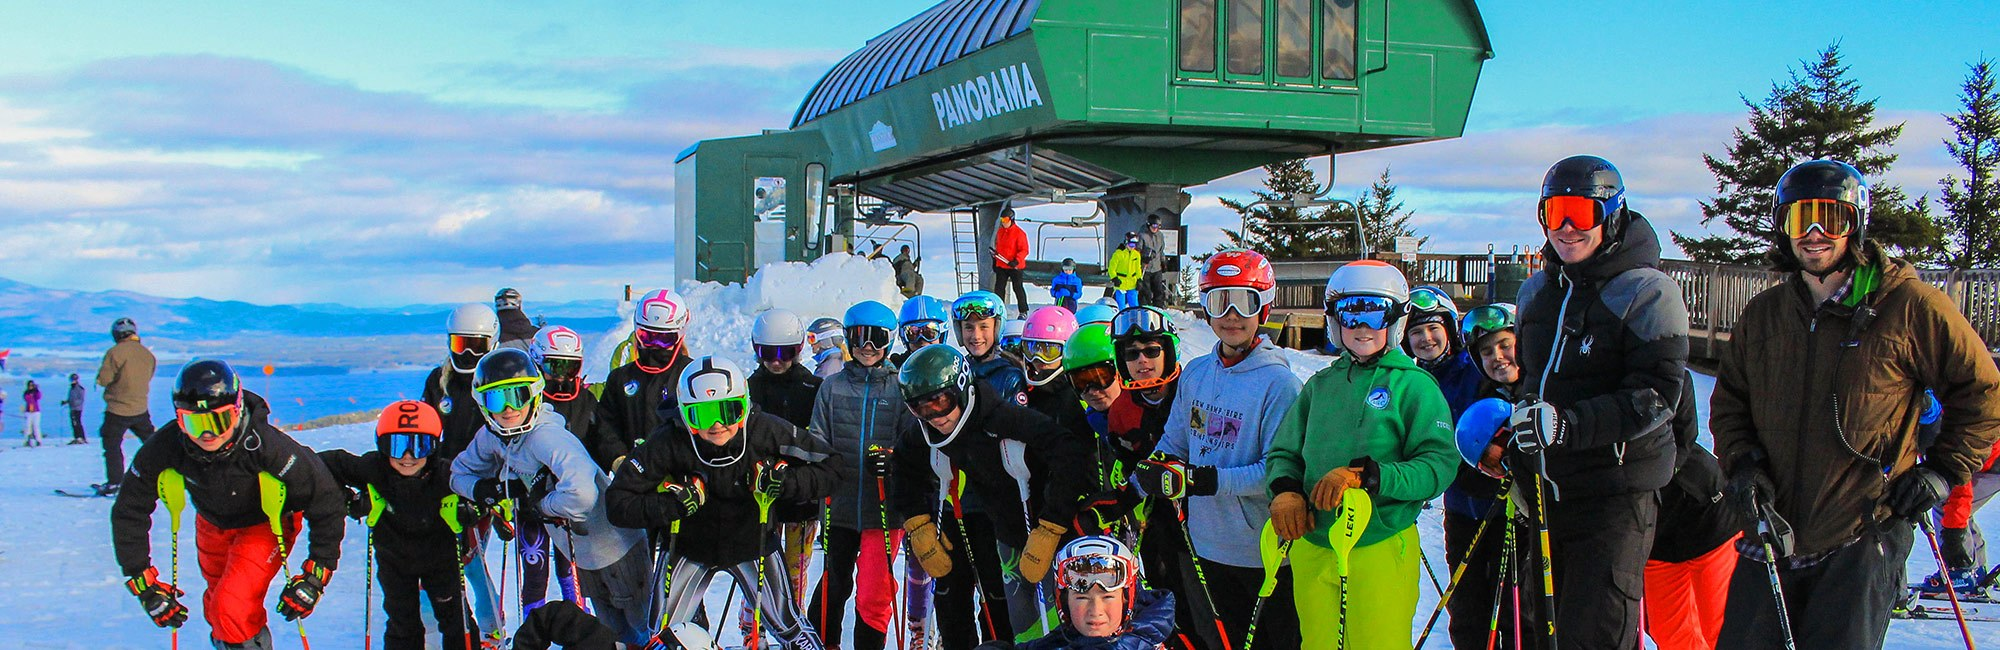 Gunstock Ski Club at the Summit